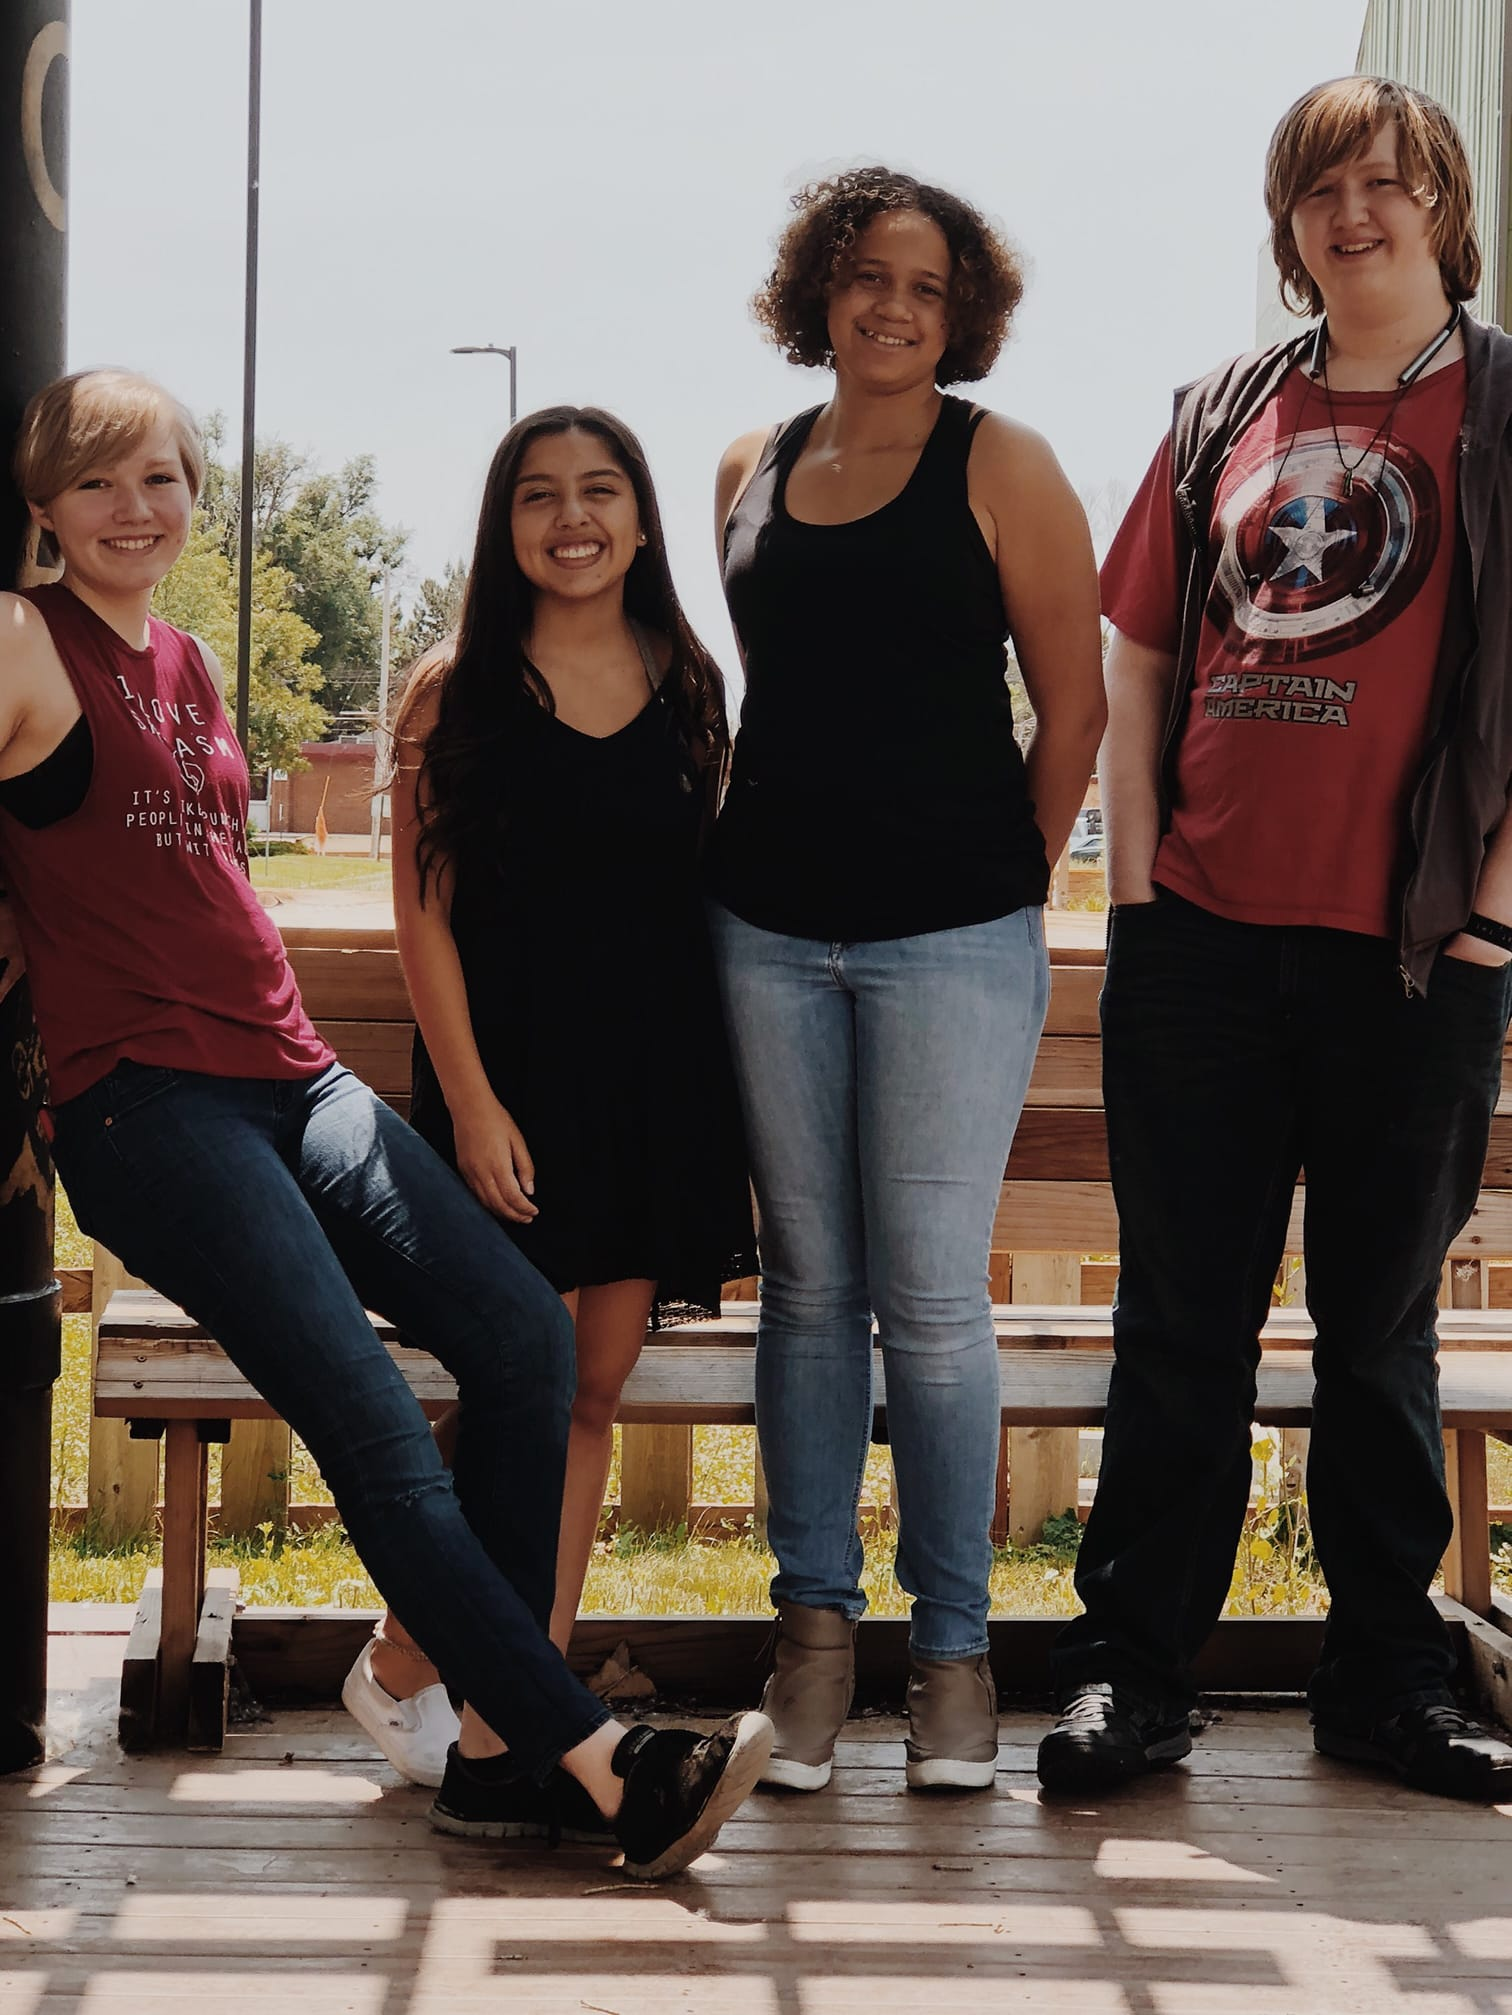 (left to right) Jessica Coy, Alana Marie Barros, Joann Wadsworth, and Andrew Coy